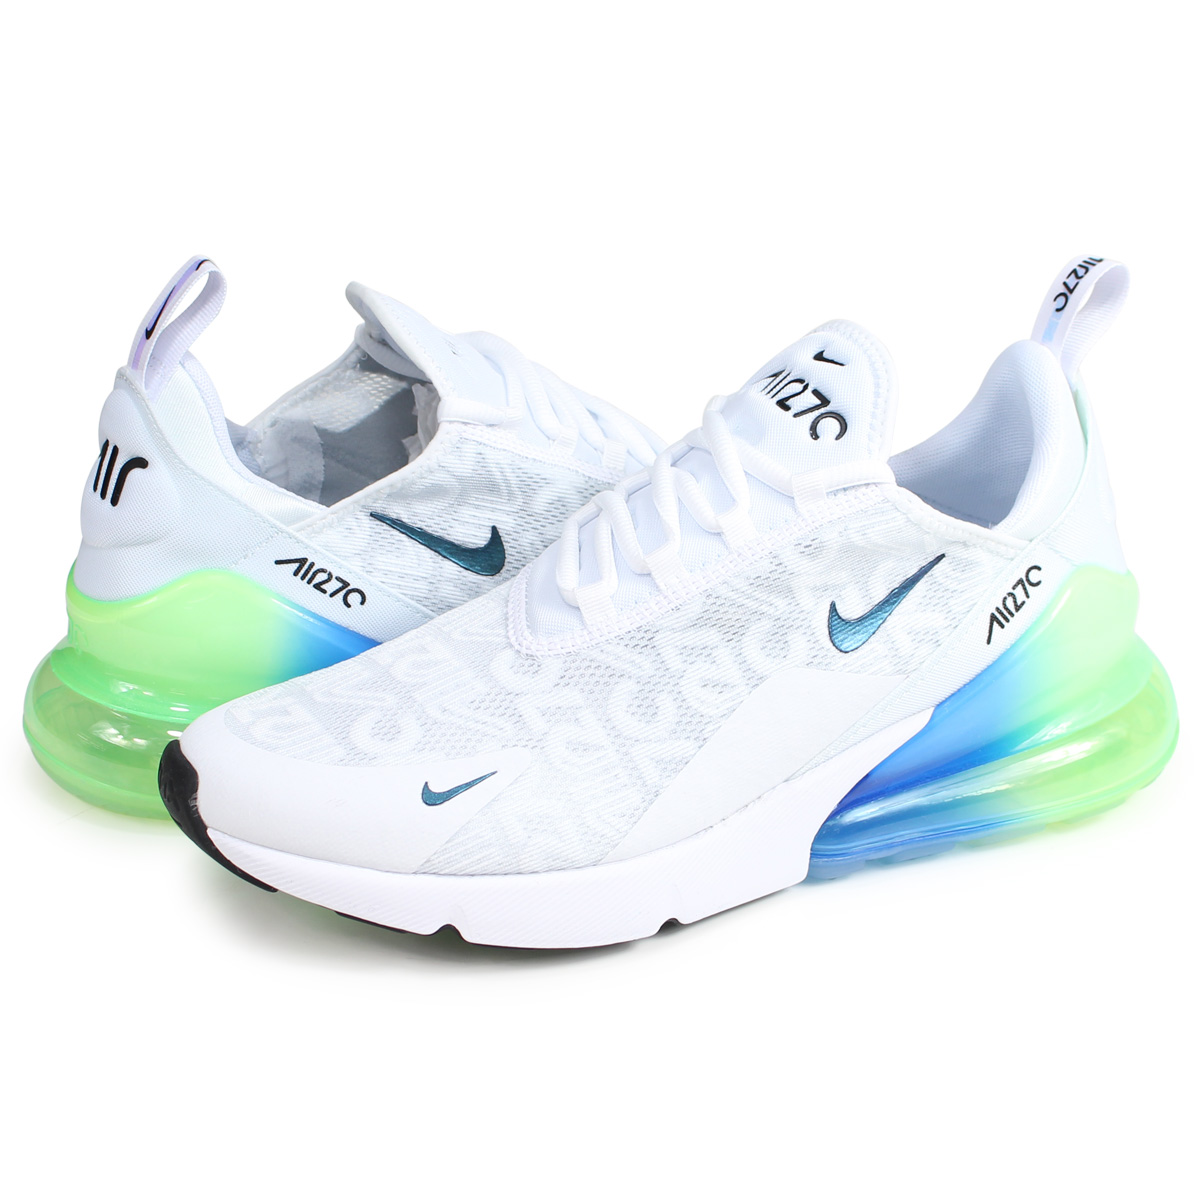 sale retailer 90f43 edd44 Nike NIKE Air Max 270 sneakers men AIR MAX 270 SE white AQ9164-100 [load  planned Shinnyu load in reservation product 2/14 containing] [191]